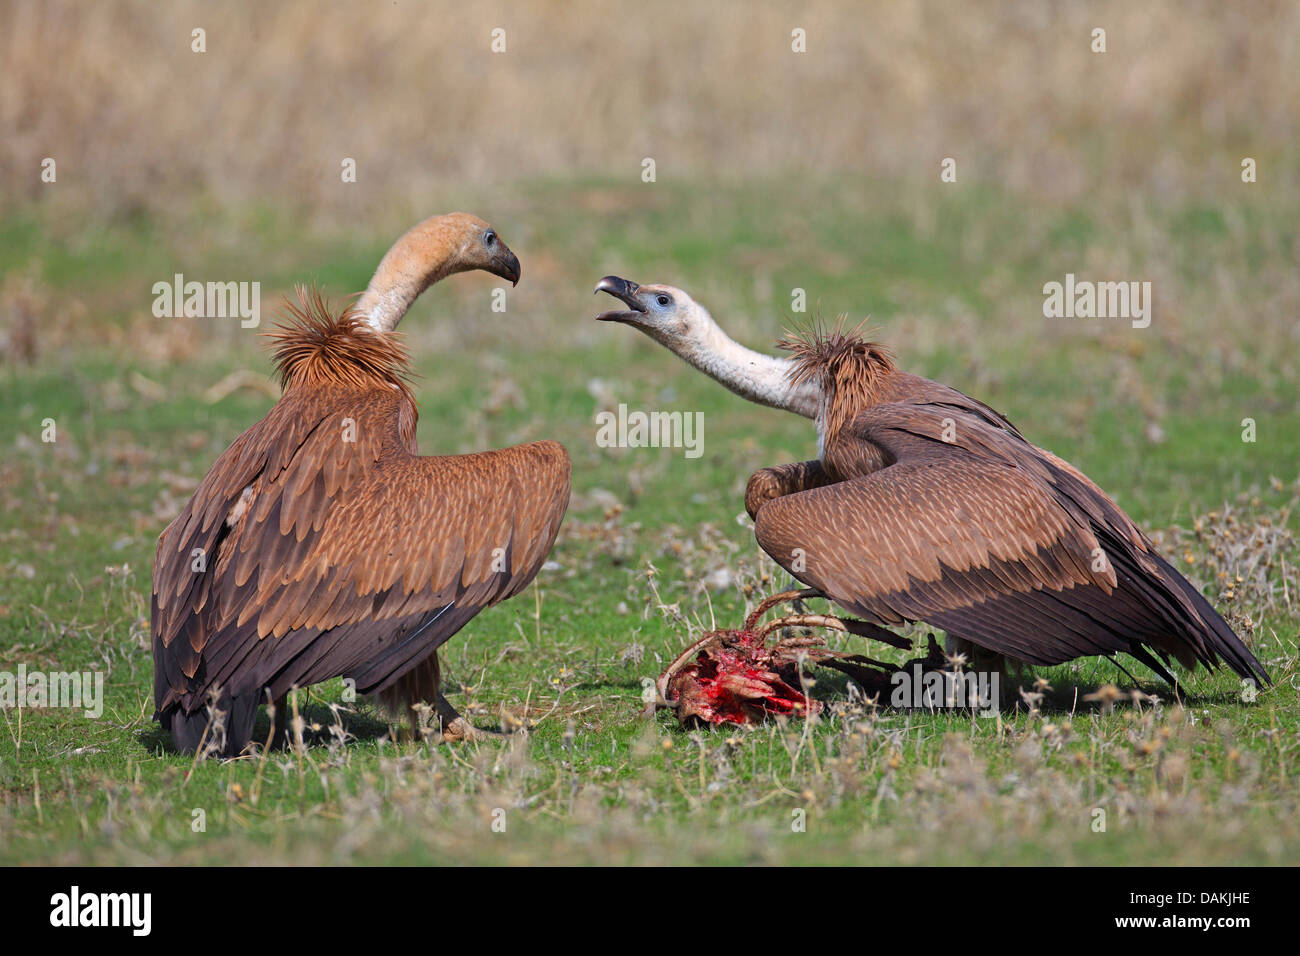 griffon vulture (Gyps fulvus), two young birds conflicting for feed, Spain, Extremadura - Stock Image